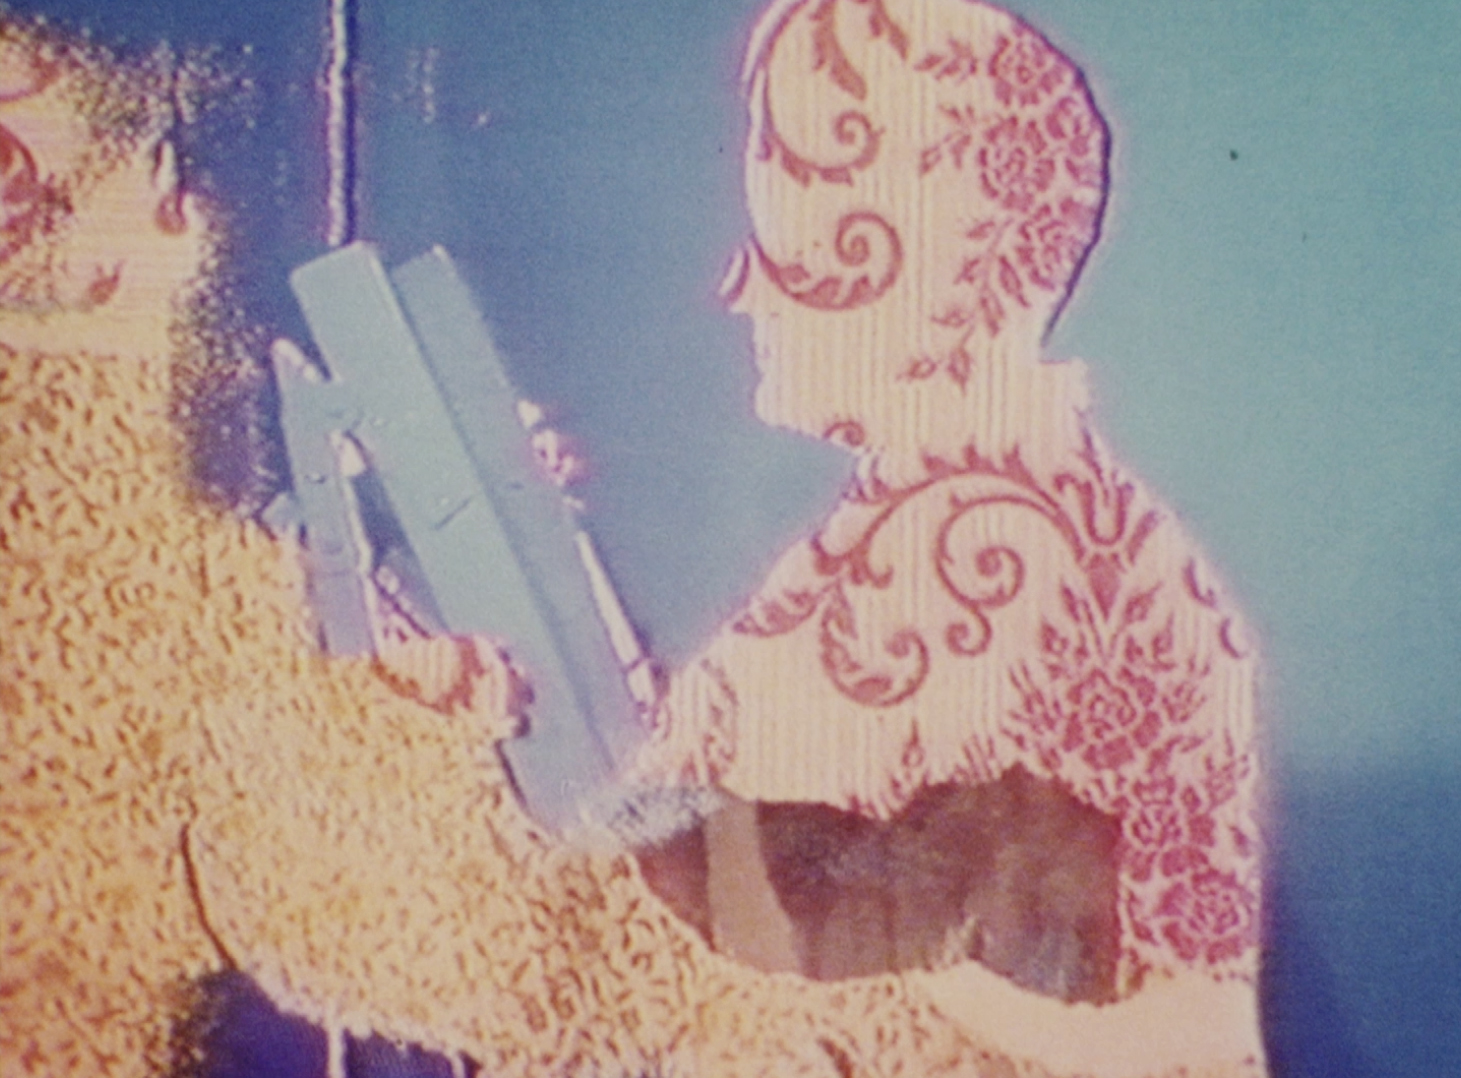 Film still from 'Faded Wallpaper' by Tina Keane